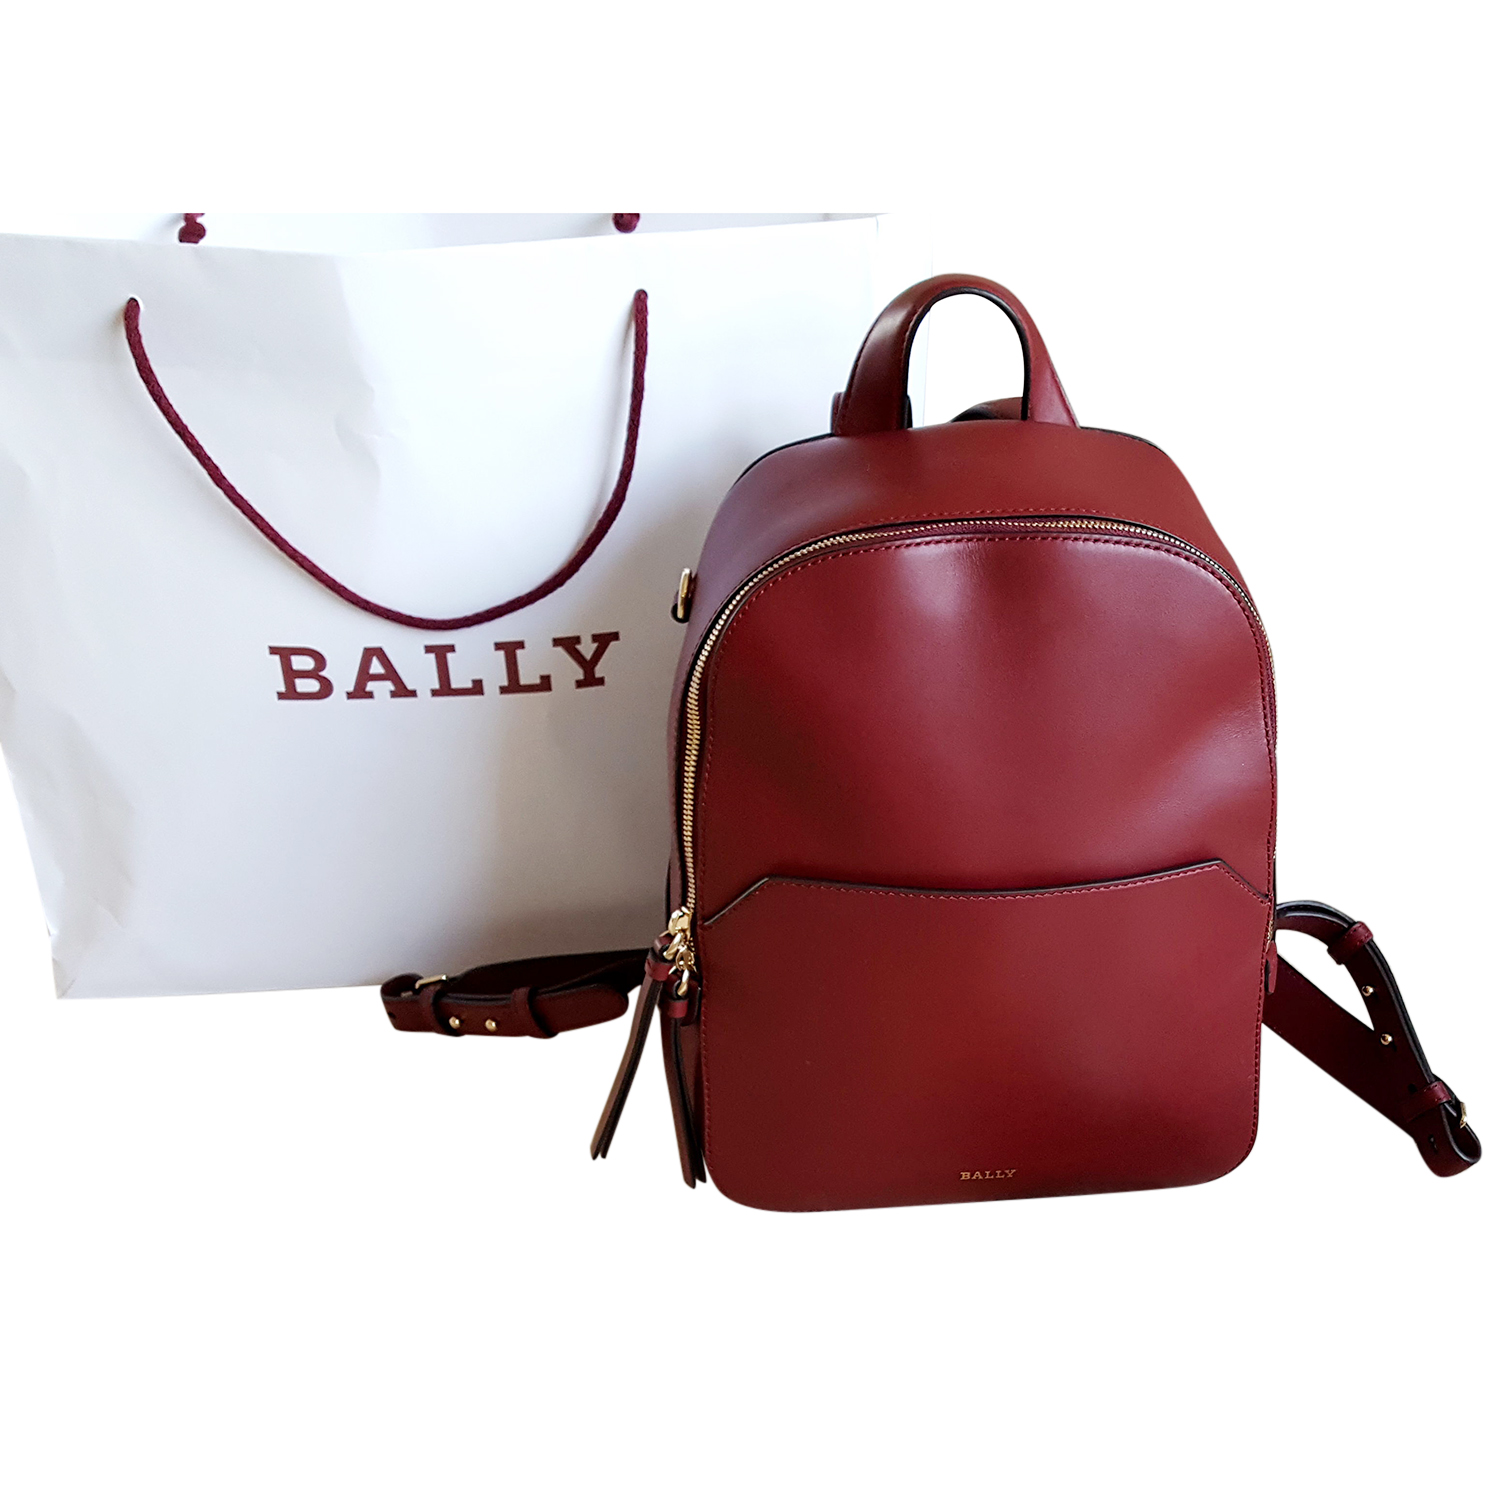 241a0bec09 Bally Red Backpack